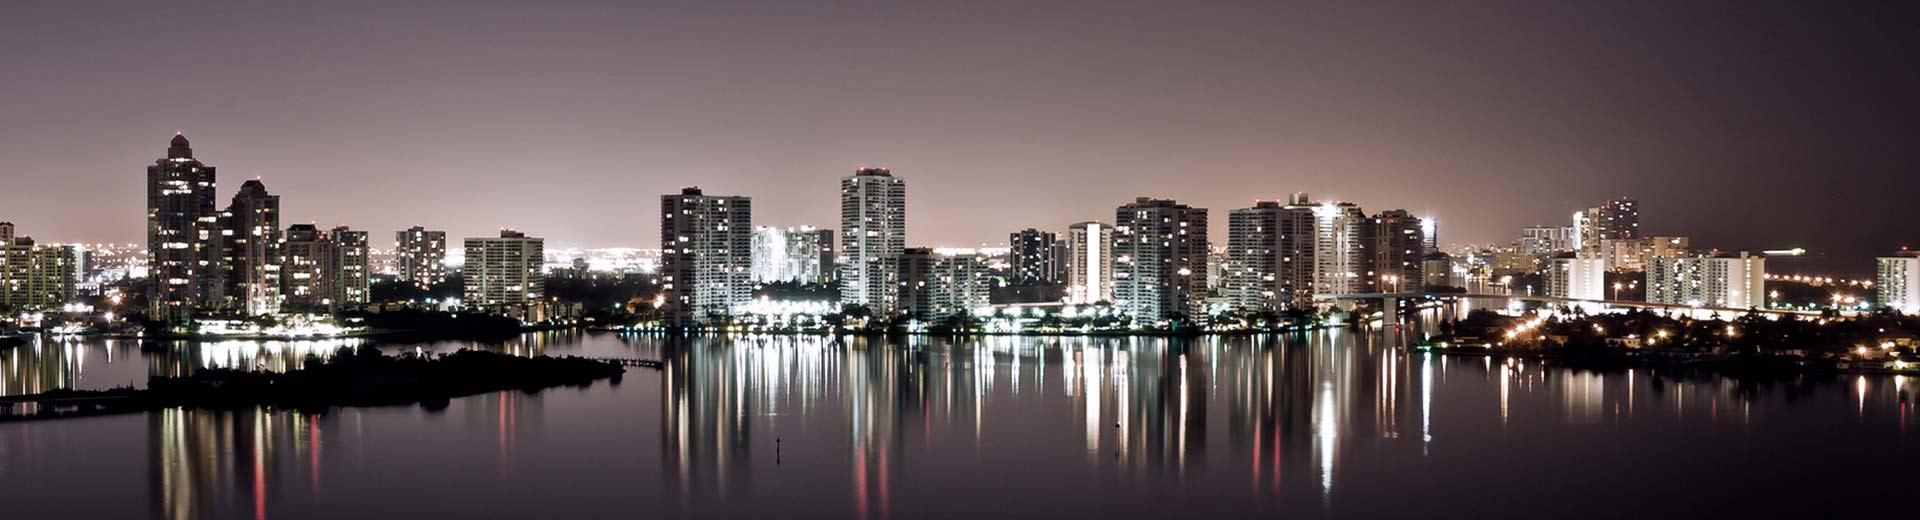 At nighttime the skyline of Fort Lauderdale lights up the sky